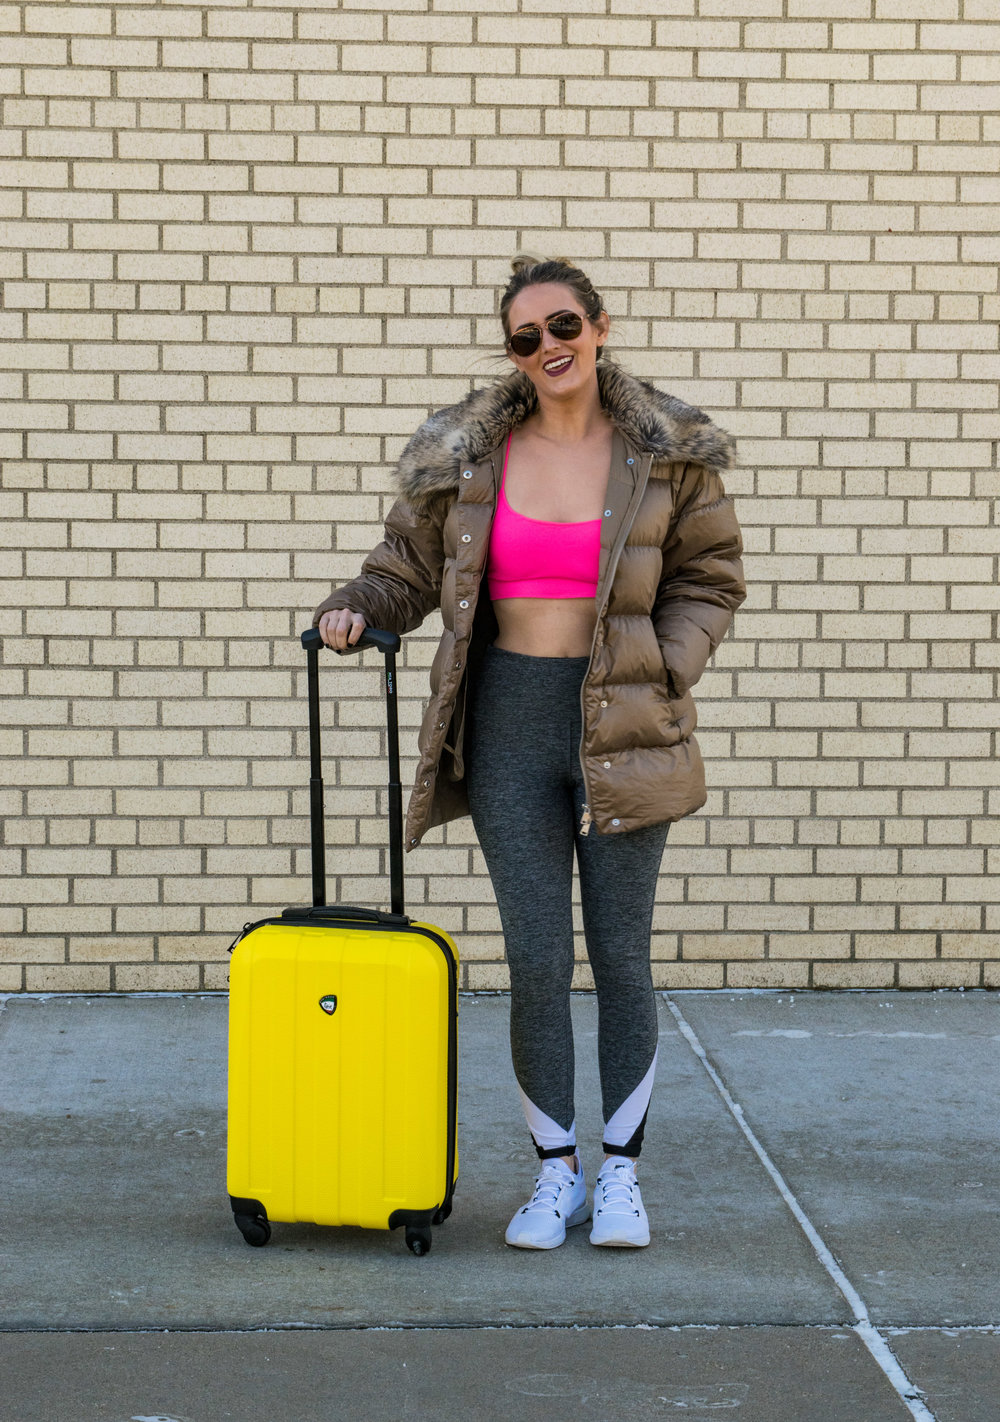 COLOR POP! - Get fab luggage like my Mia Toro carry-on major discount at Gordmans.